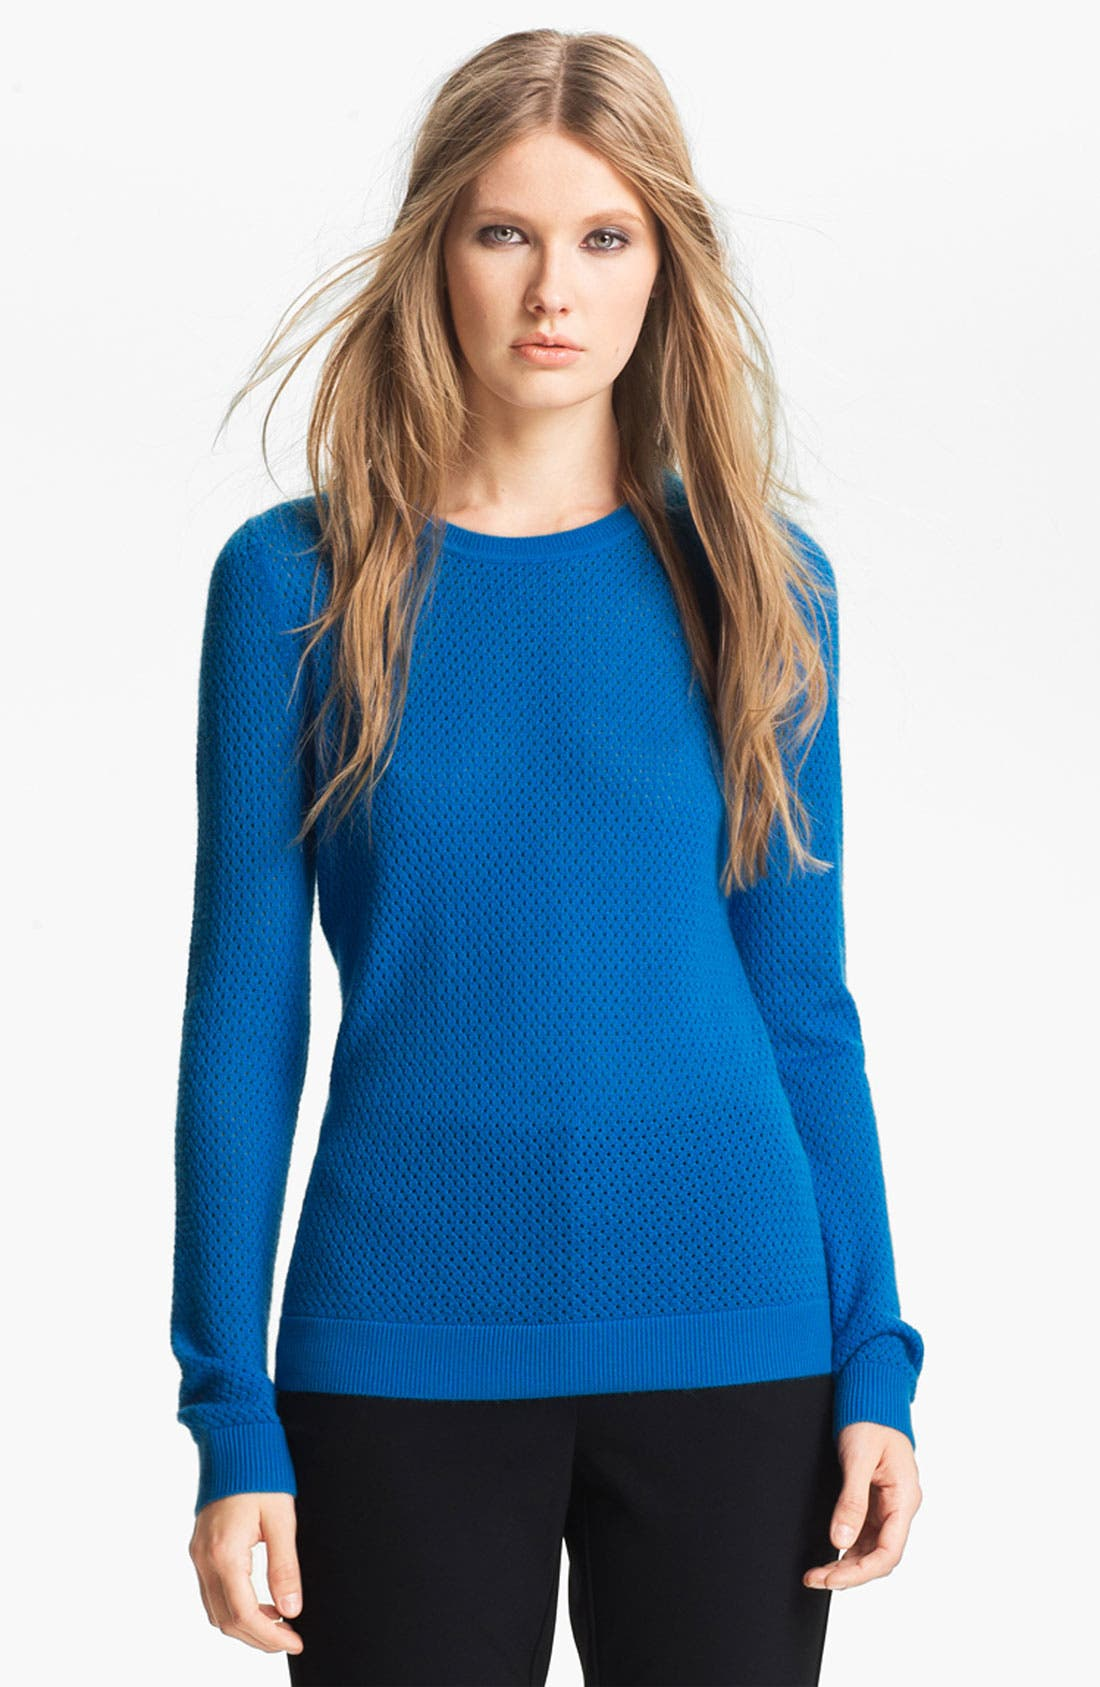 Alternate Image 1 Selected - Miss Wu 'Sofie' Stitch Detail Cashmere Sweater (Nordstrom Exclusive)